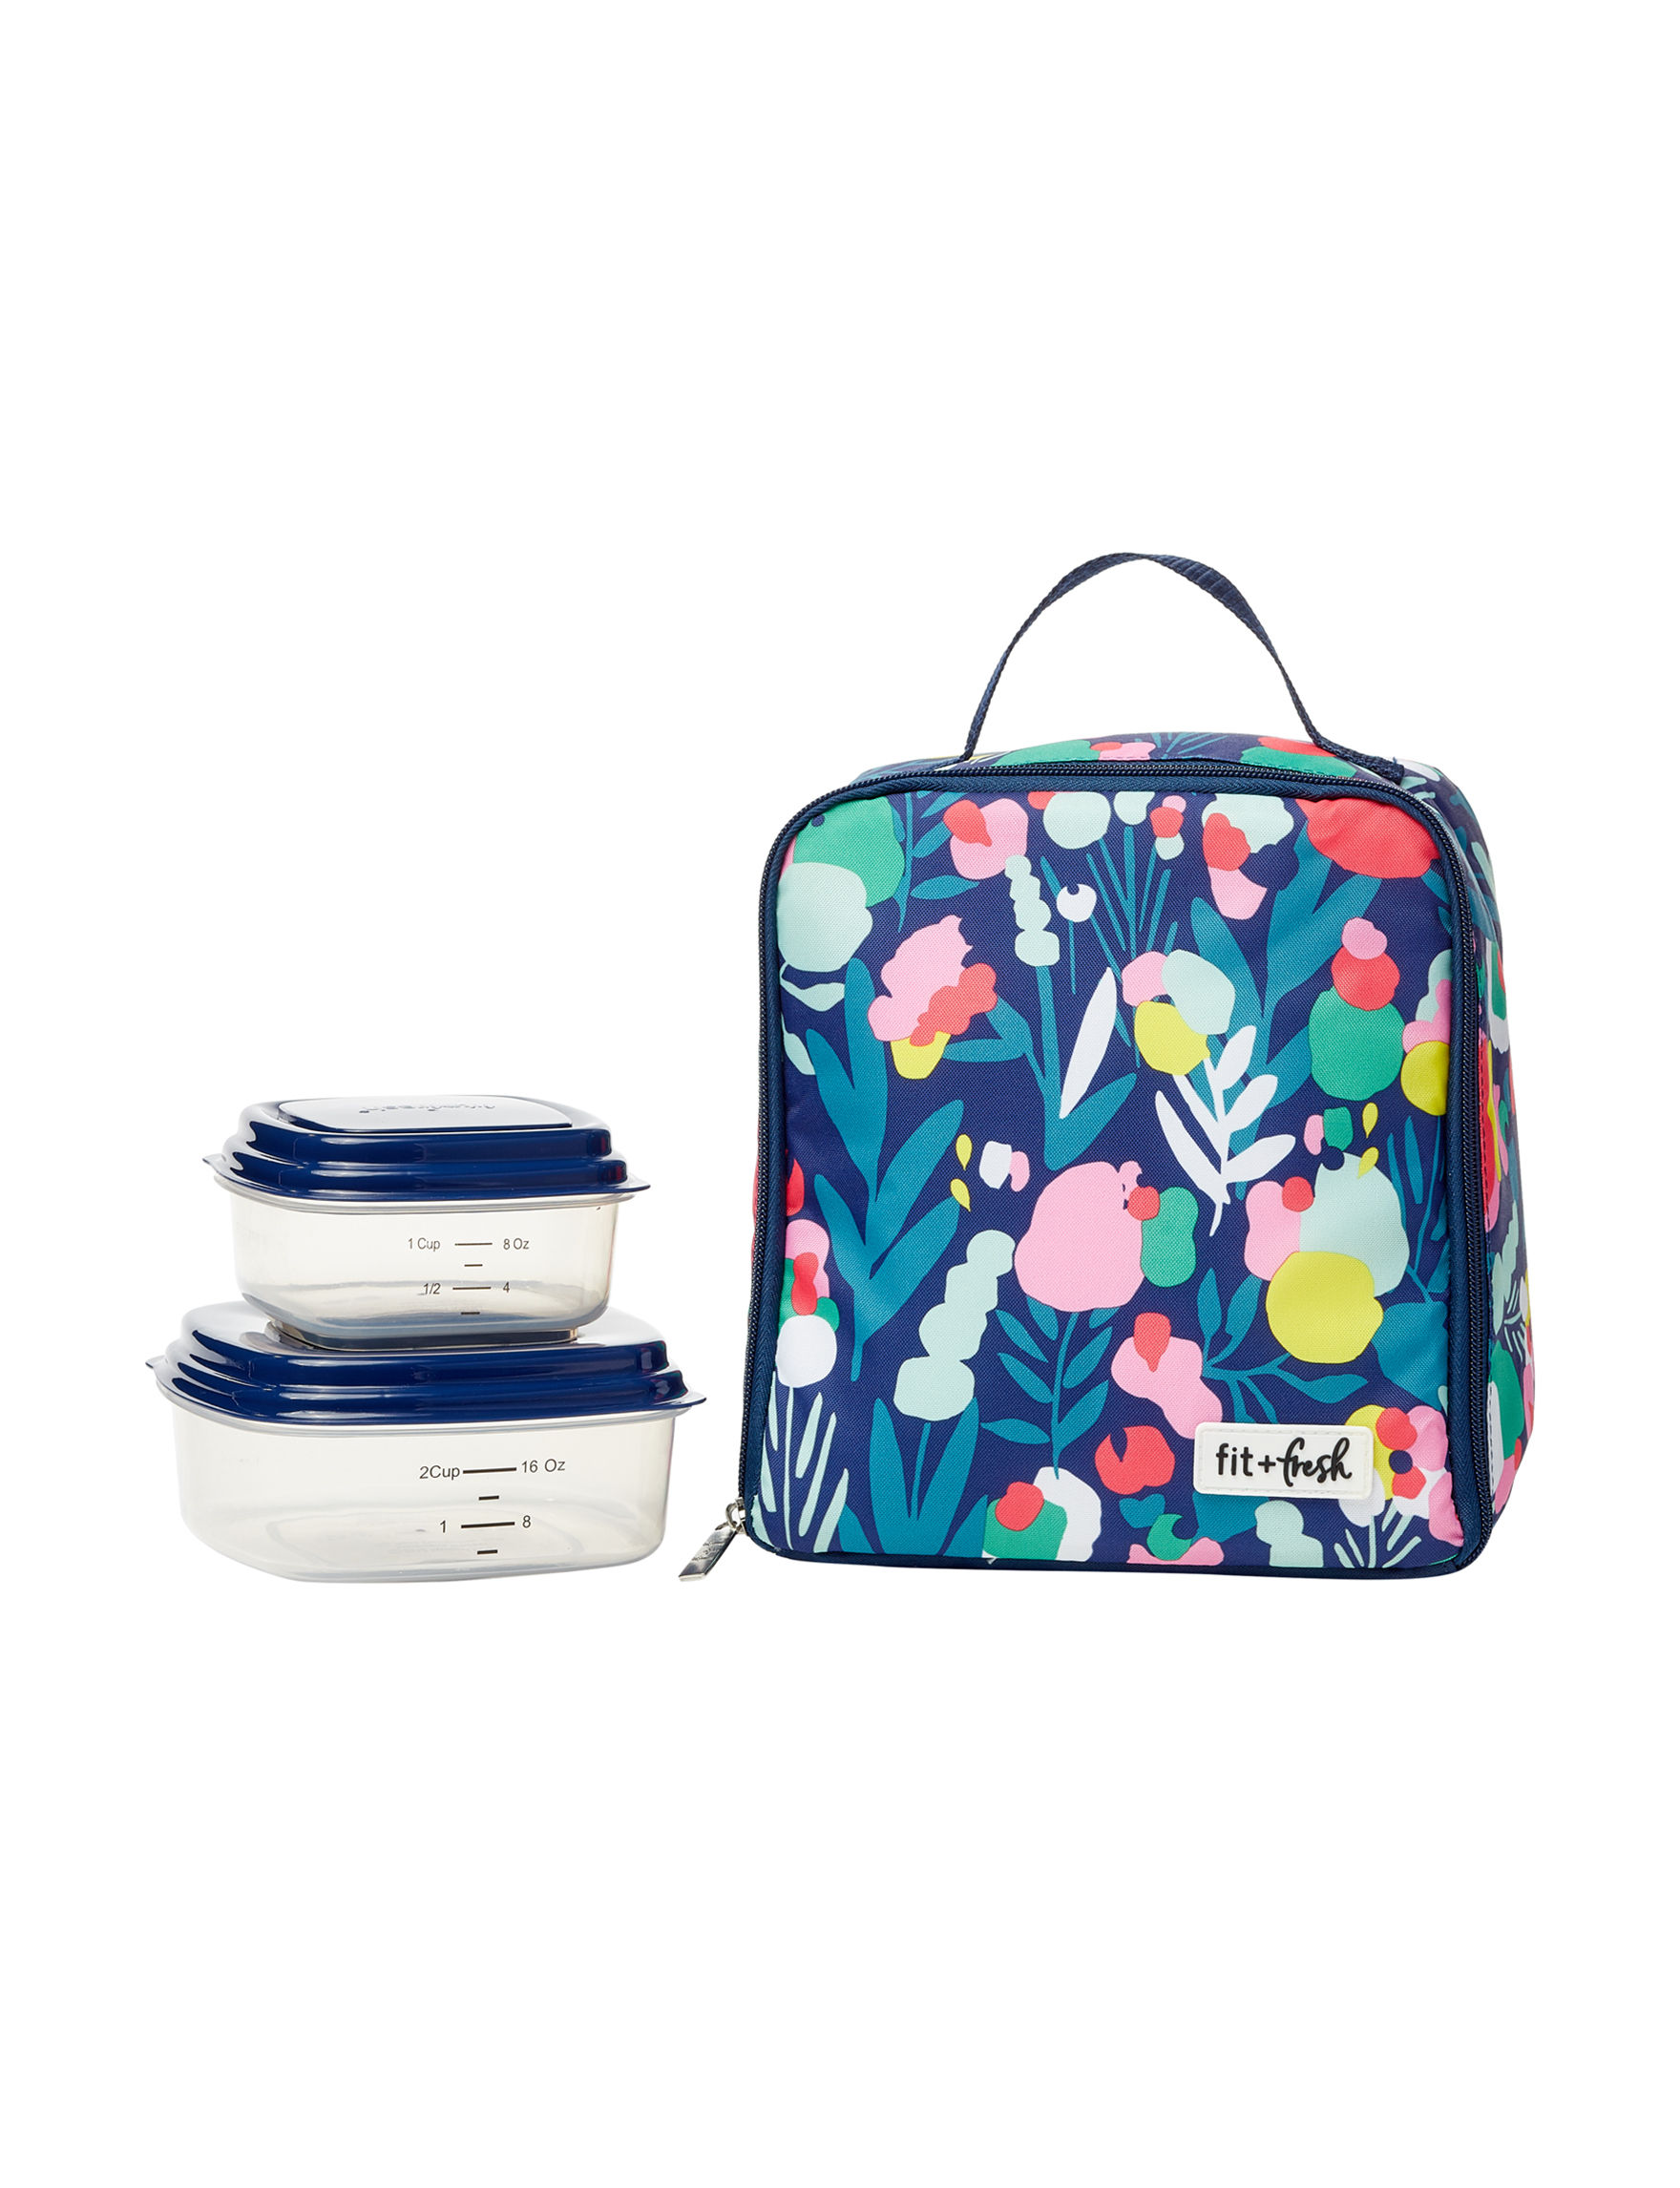 Fit & Fresh Blue Floral Lunch Boxes & Bags Kitchen Storage & Organization